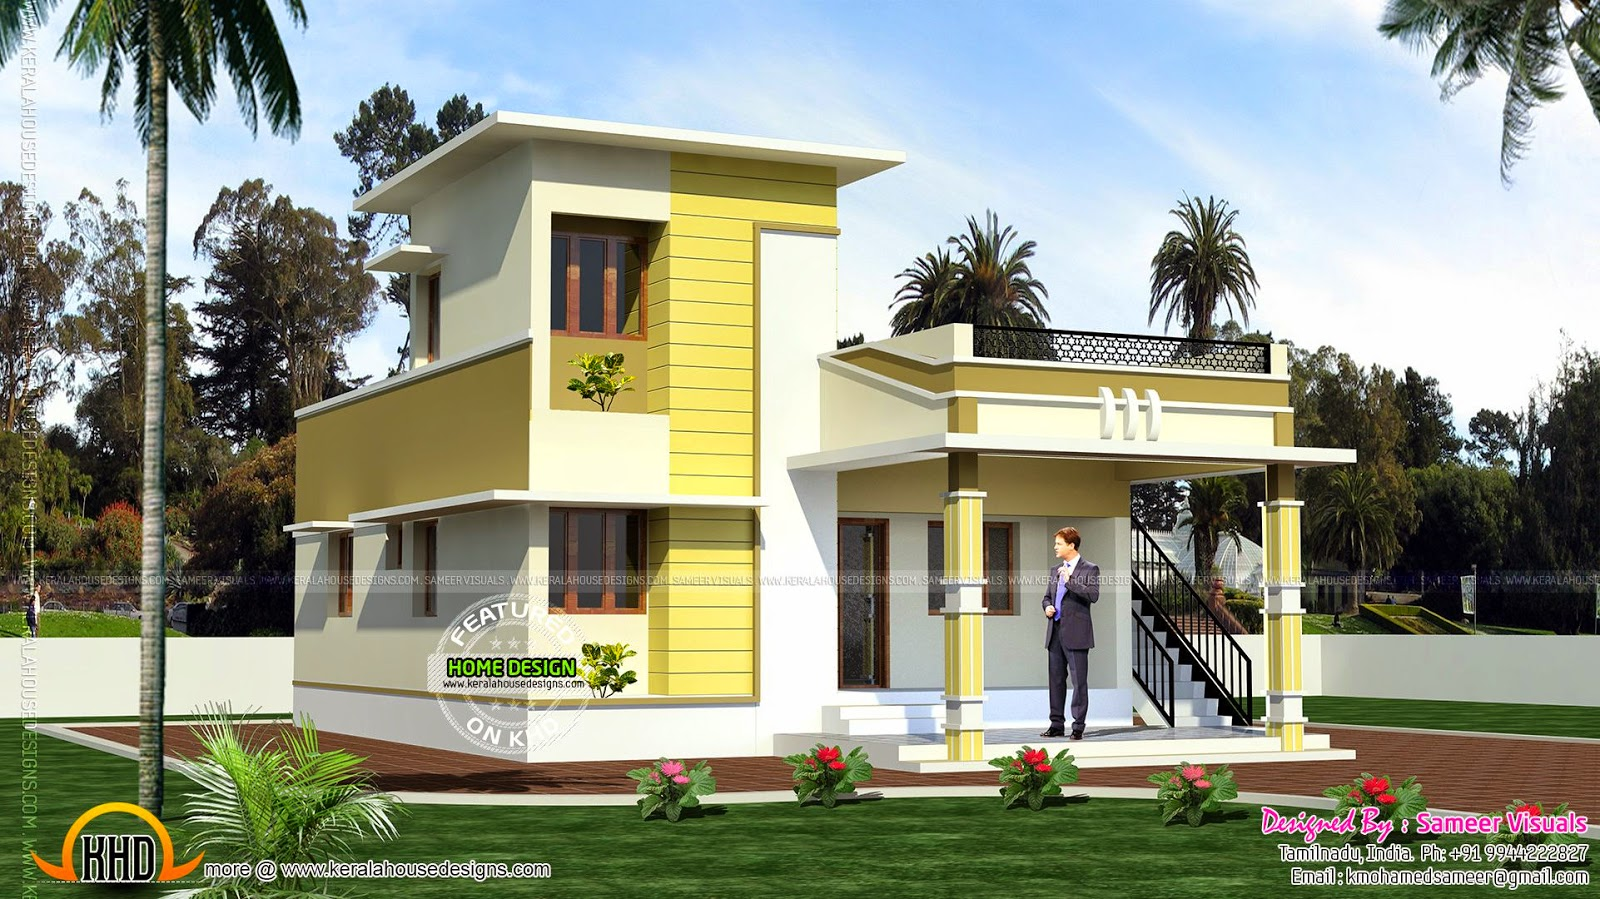 Single storied tamilnadu home kerala home design and for Home models in tamilnadu pictures